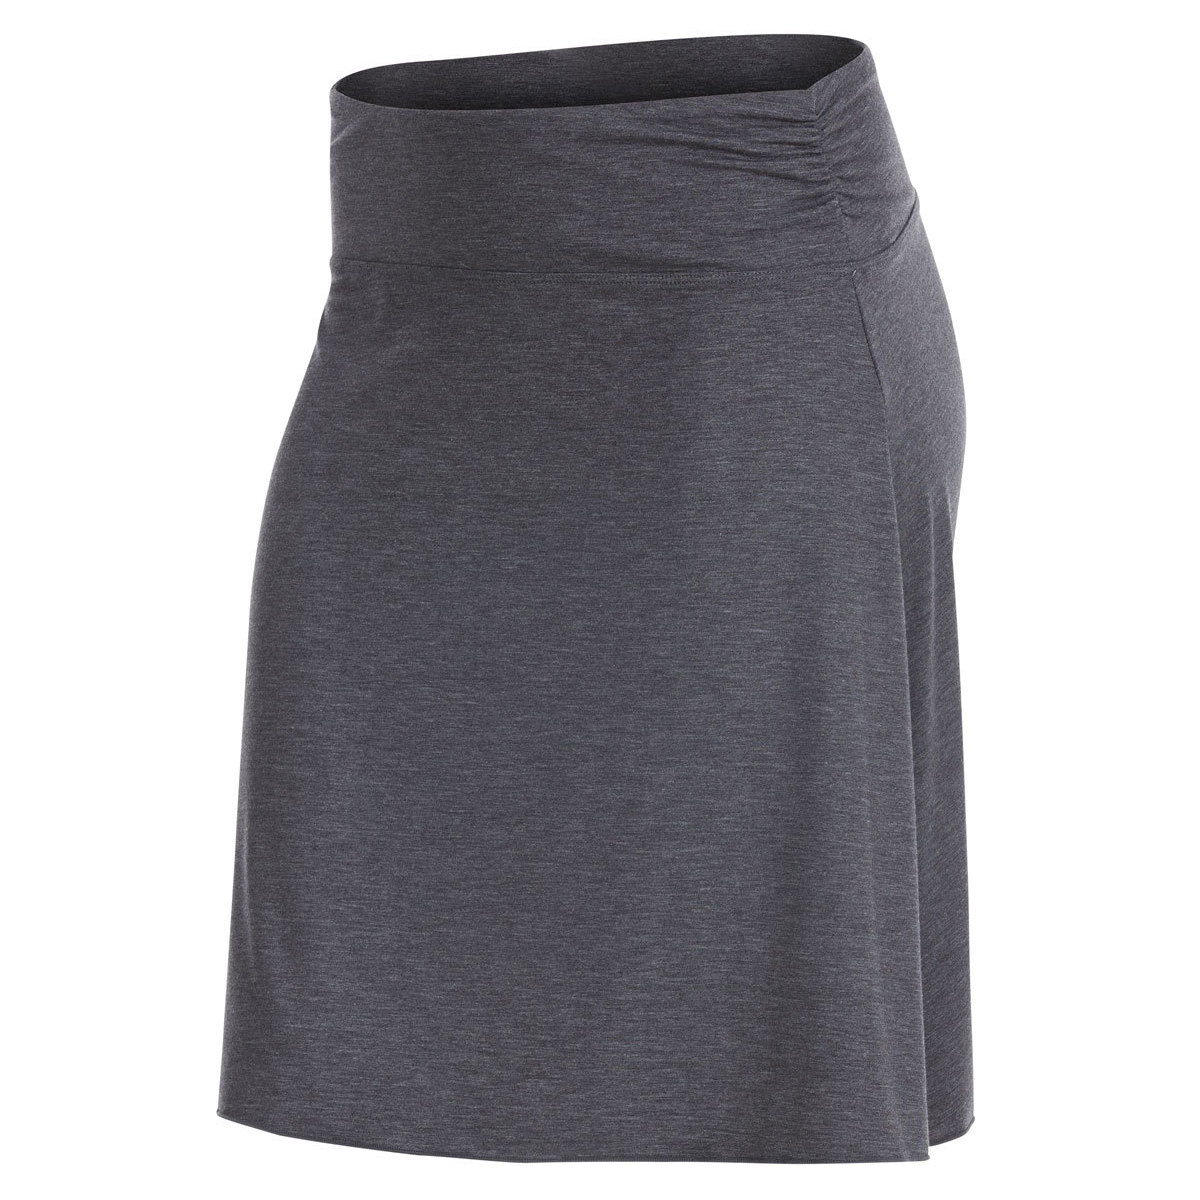 Ems Women's Highland Skirt - Black, M